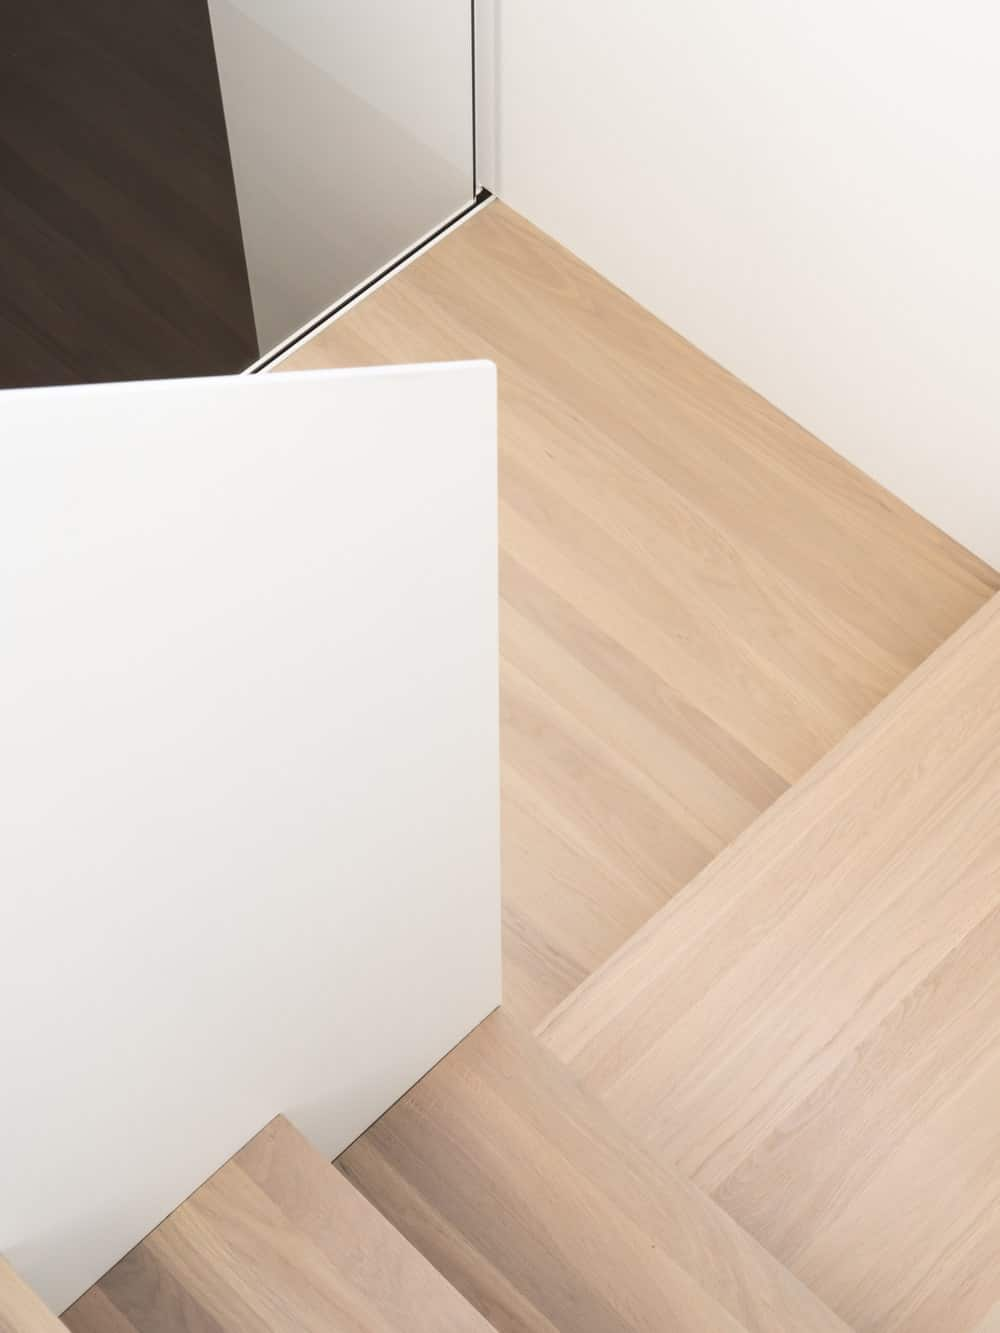 Here you can see the wooden steps of the staircase complemented by the bright beige tone of the walls.